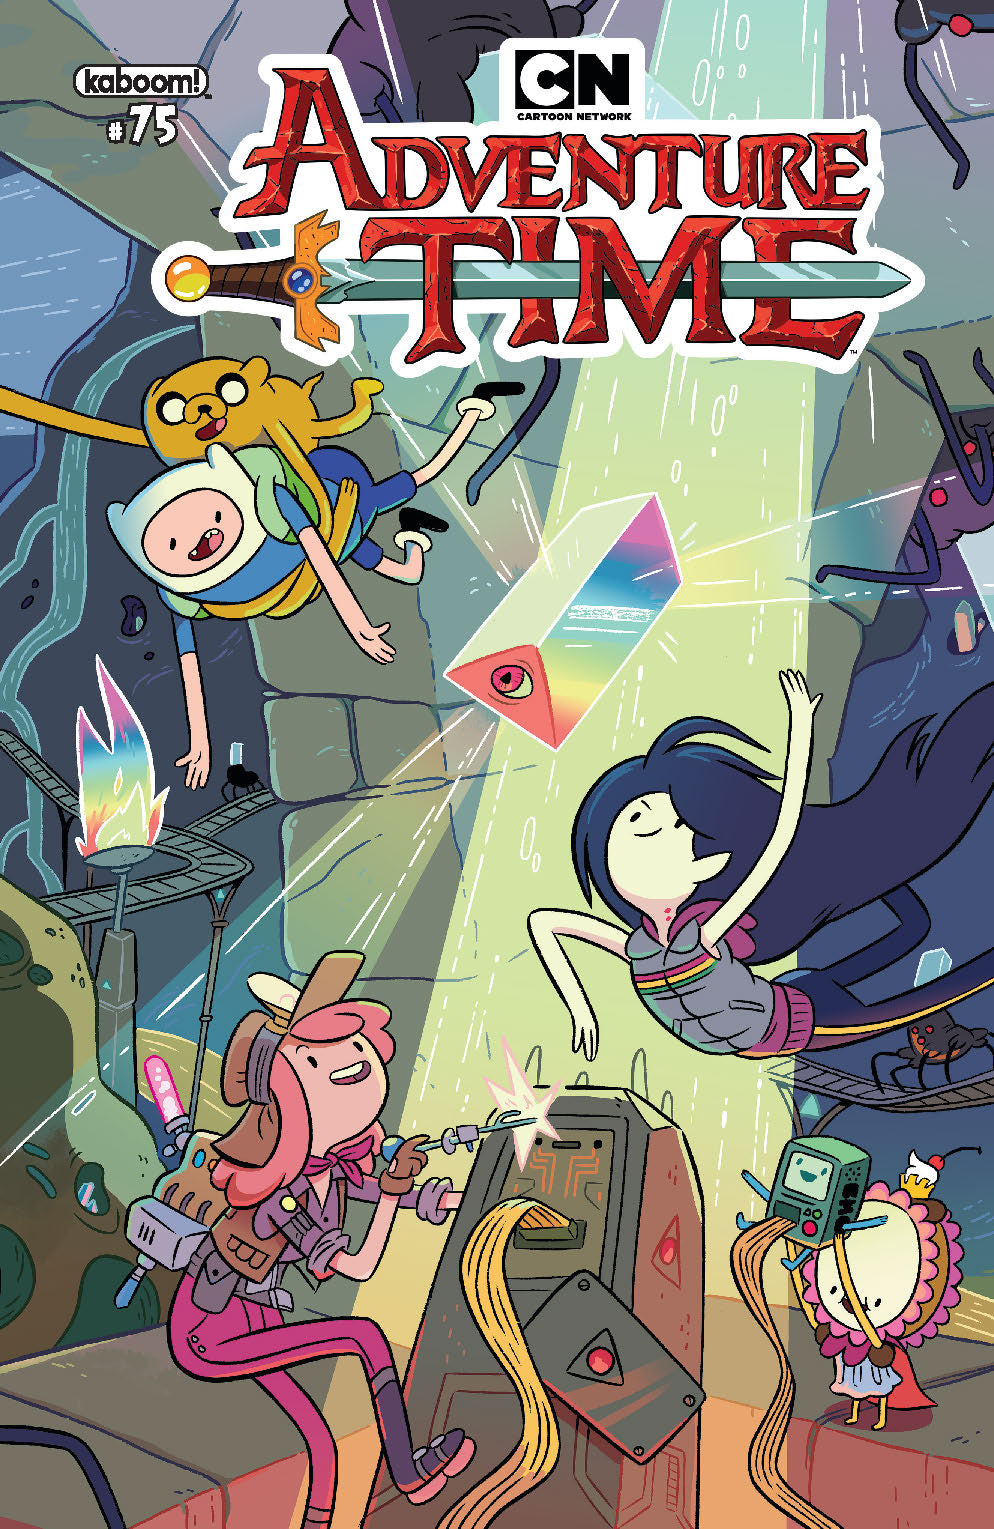 ADVENTURE TIME #75 MAIN WRAPAROUND COVER